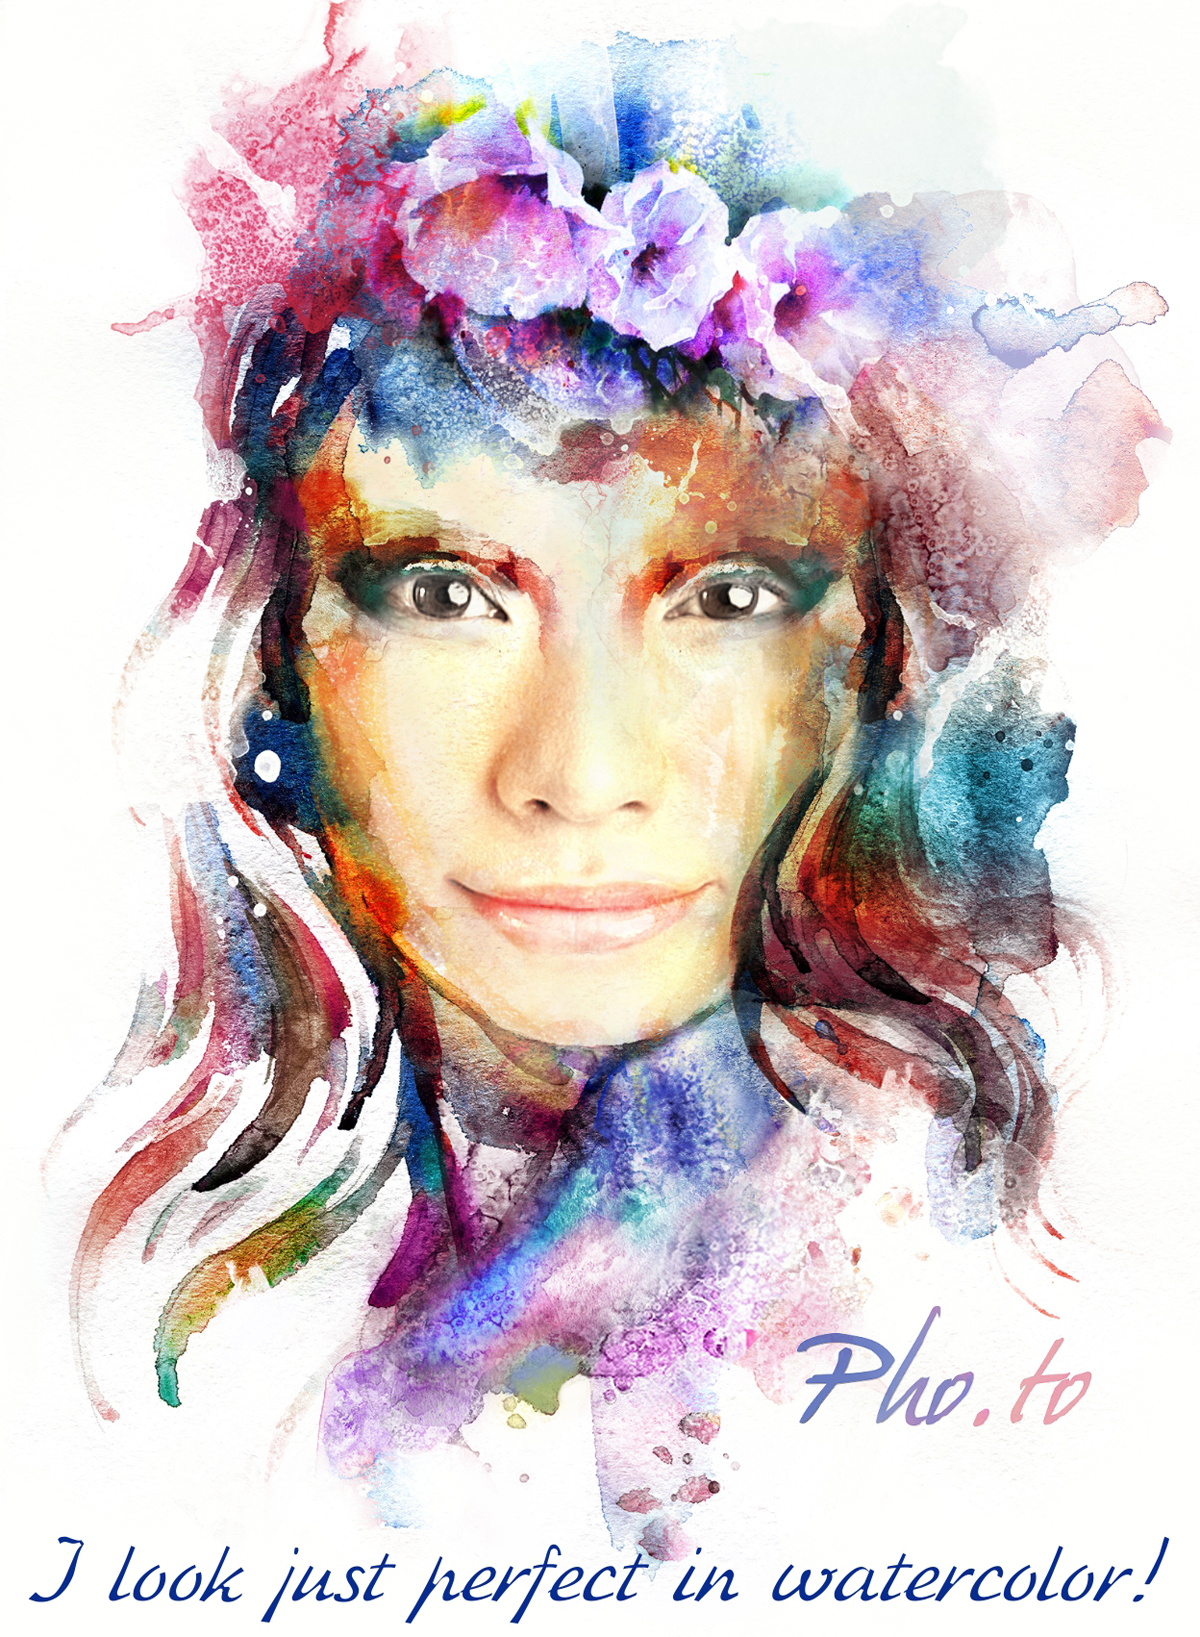 A photo turned into painting to get a colorful female watercolor portrait online.